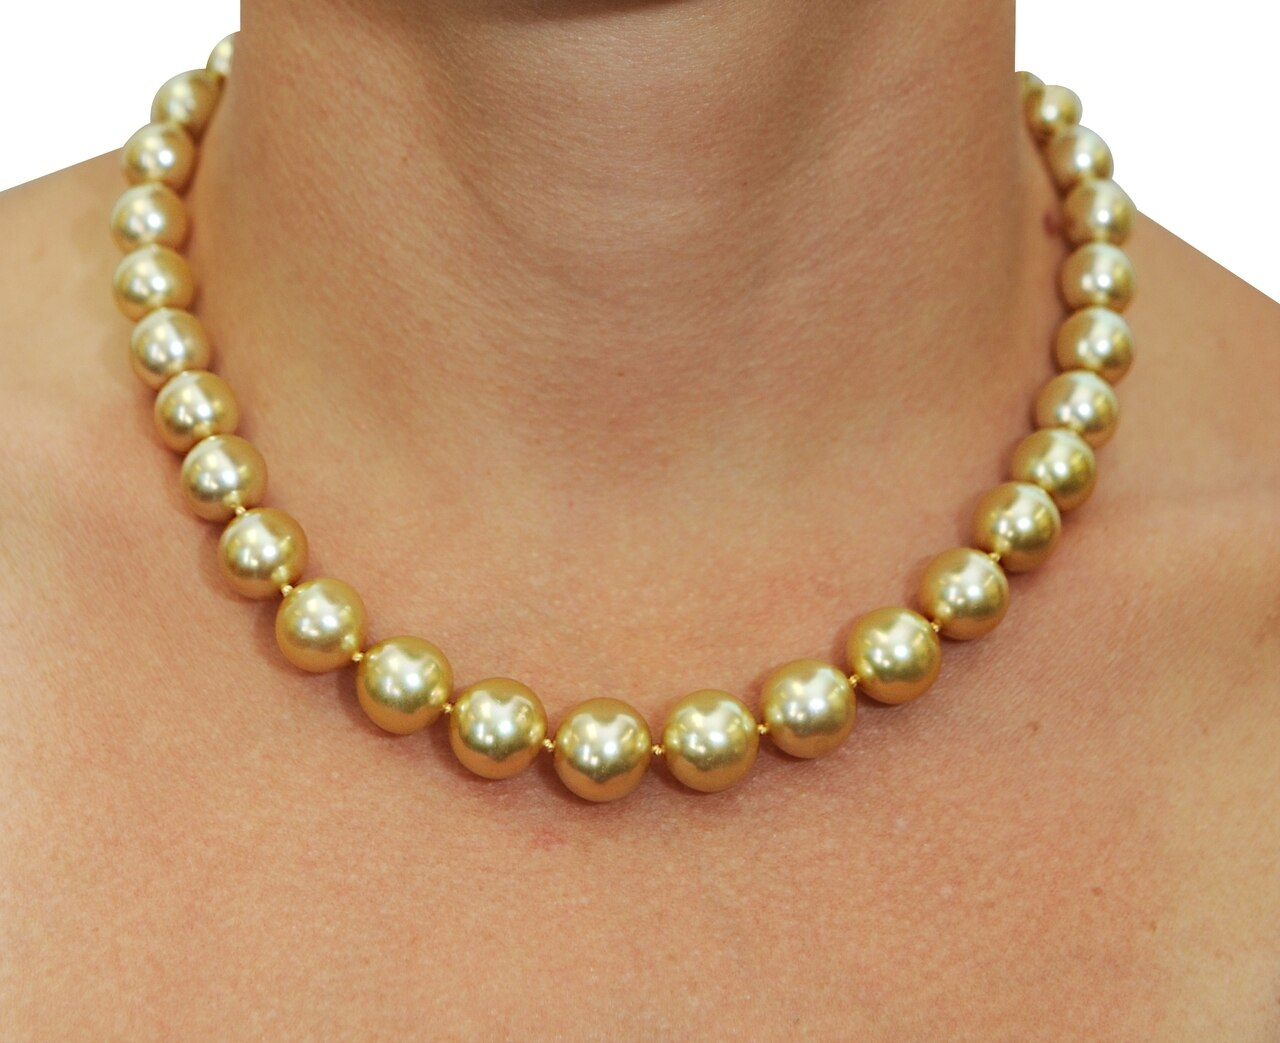 This elegant necklace features 10.0-13.0mm Gold South Sea pearls, handpicked for their luminous luster